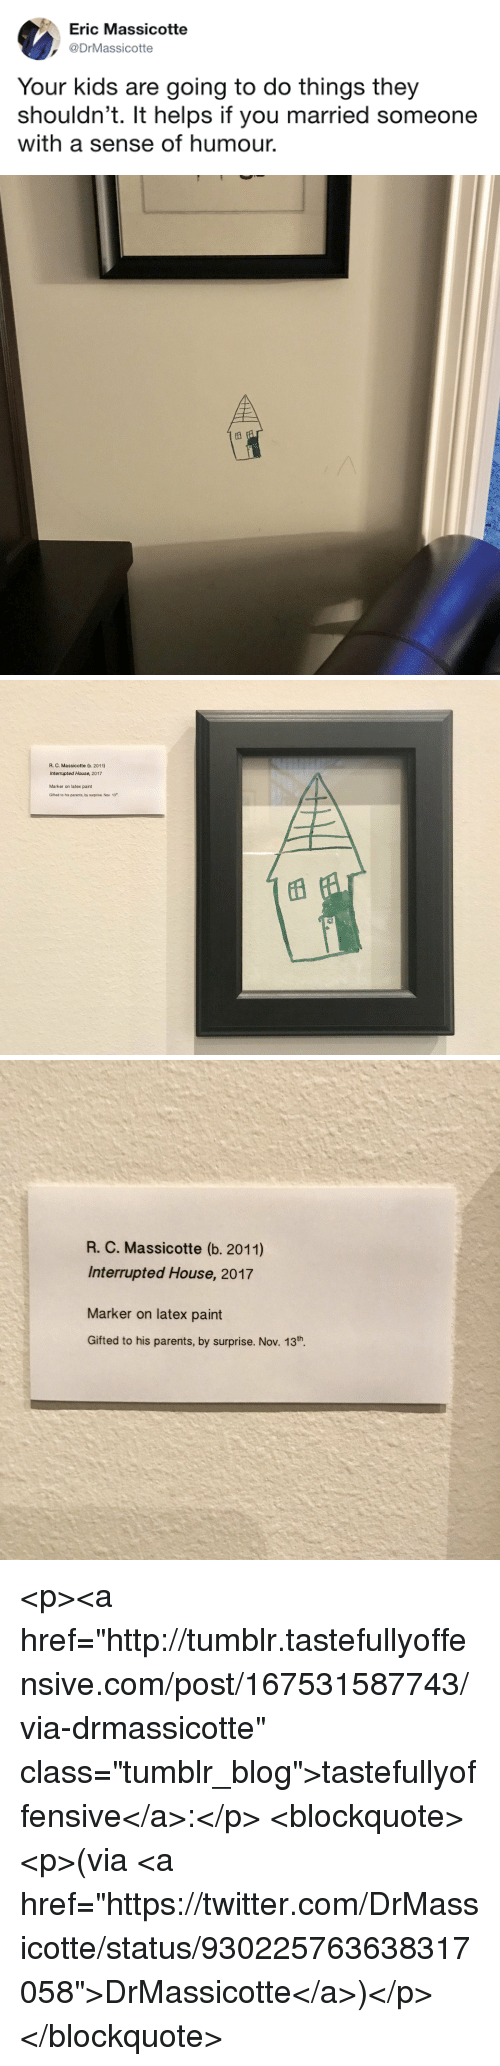 "Parents, Tumblr, and Twitter: Eric Massicotte  DrMassicotte  Your kids are going to do things they  shouldn't. It helps if you married someone  with a sense of humour.   R. C. Massicotte (b. 2011)  Interrupted House, 2017  Marker on latex paint  Gifted to his parents, by surprise. Nov. 13   R. C. Massicotte (b. 2011)  Interrupted House, 2017  Marker on latex paint  Gifted to his parents, by surprise. Nov. 13th. <p><a href=""http://tumblr.tastefullyoffensive.com/post/167531587743/via-drmassicotte"" class=""tumblr_blog"">tastefullyoffensive</a>:</p>  <blockquote><p>(via <a href=""https://twitter.com/DrMassicotte/status/930225763638317058"">DrMassicotte</a>)</p></blockquote>"